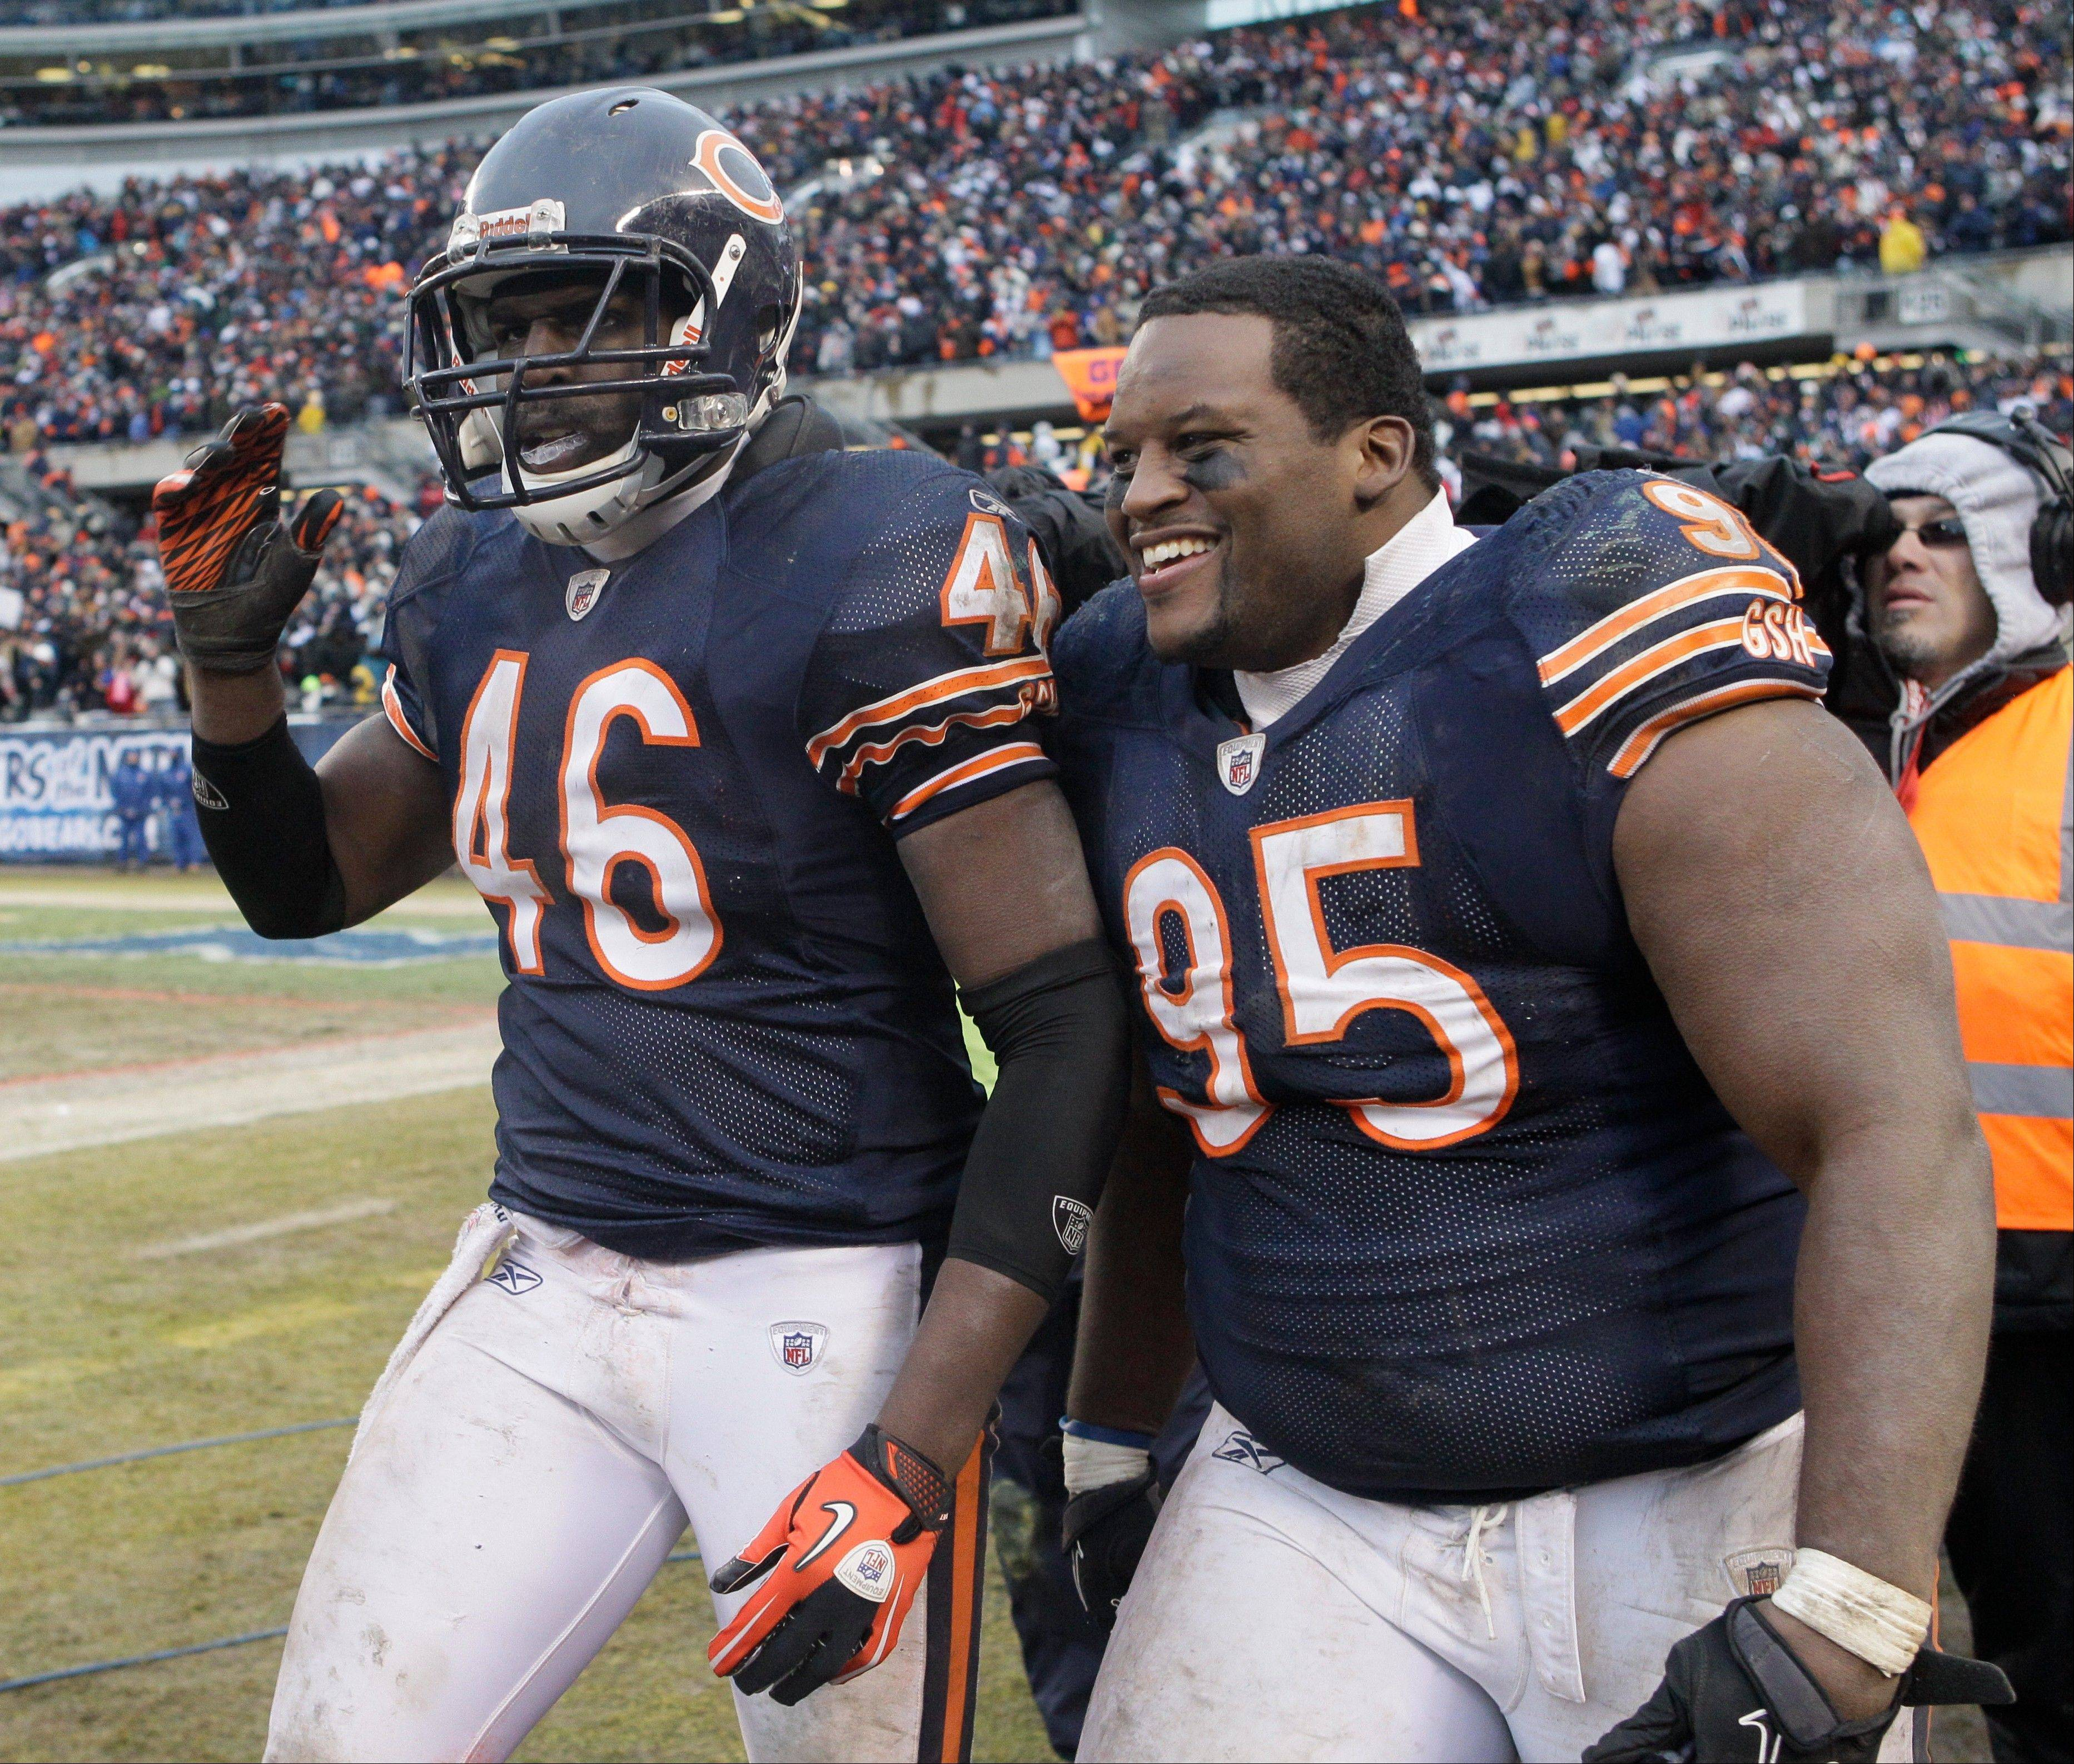 Chicago Bears defensive tackle Anthony Adams (95) walks off the field with Chris Harris (46) after a victory over the Jets last December.